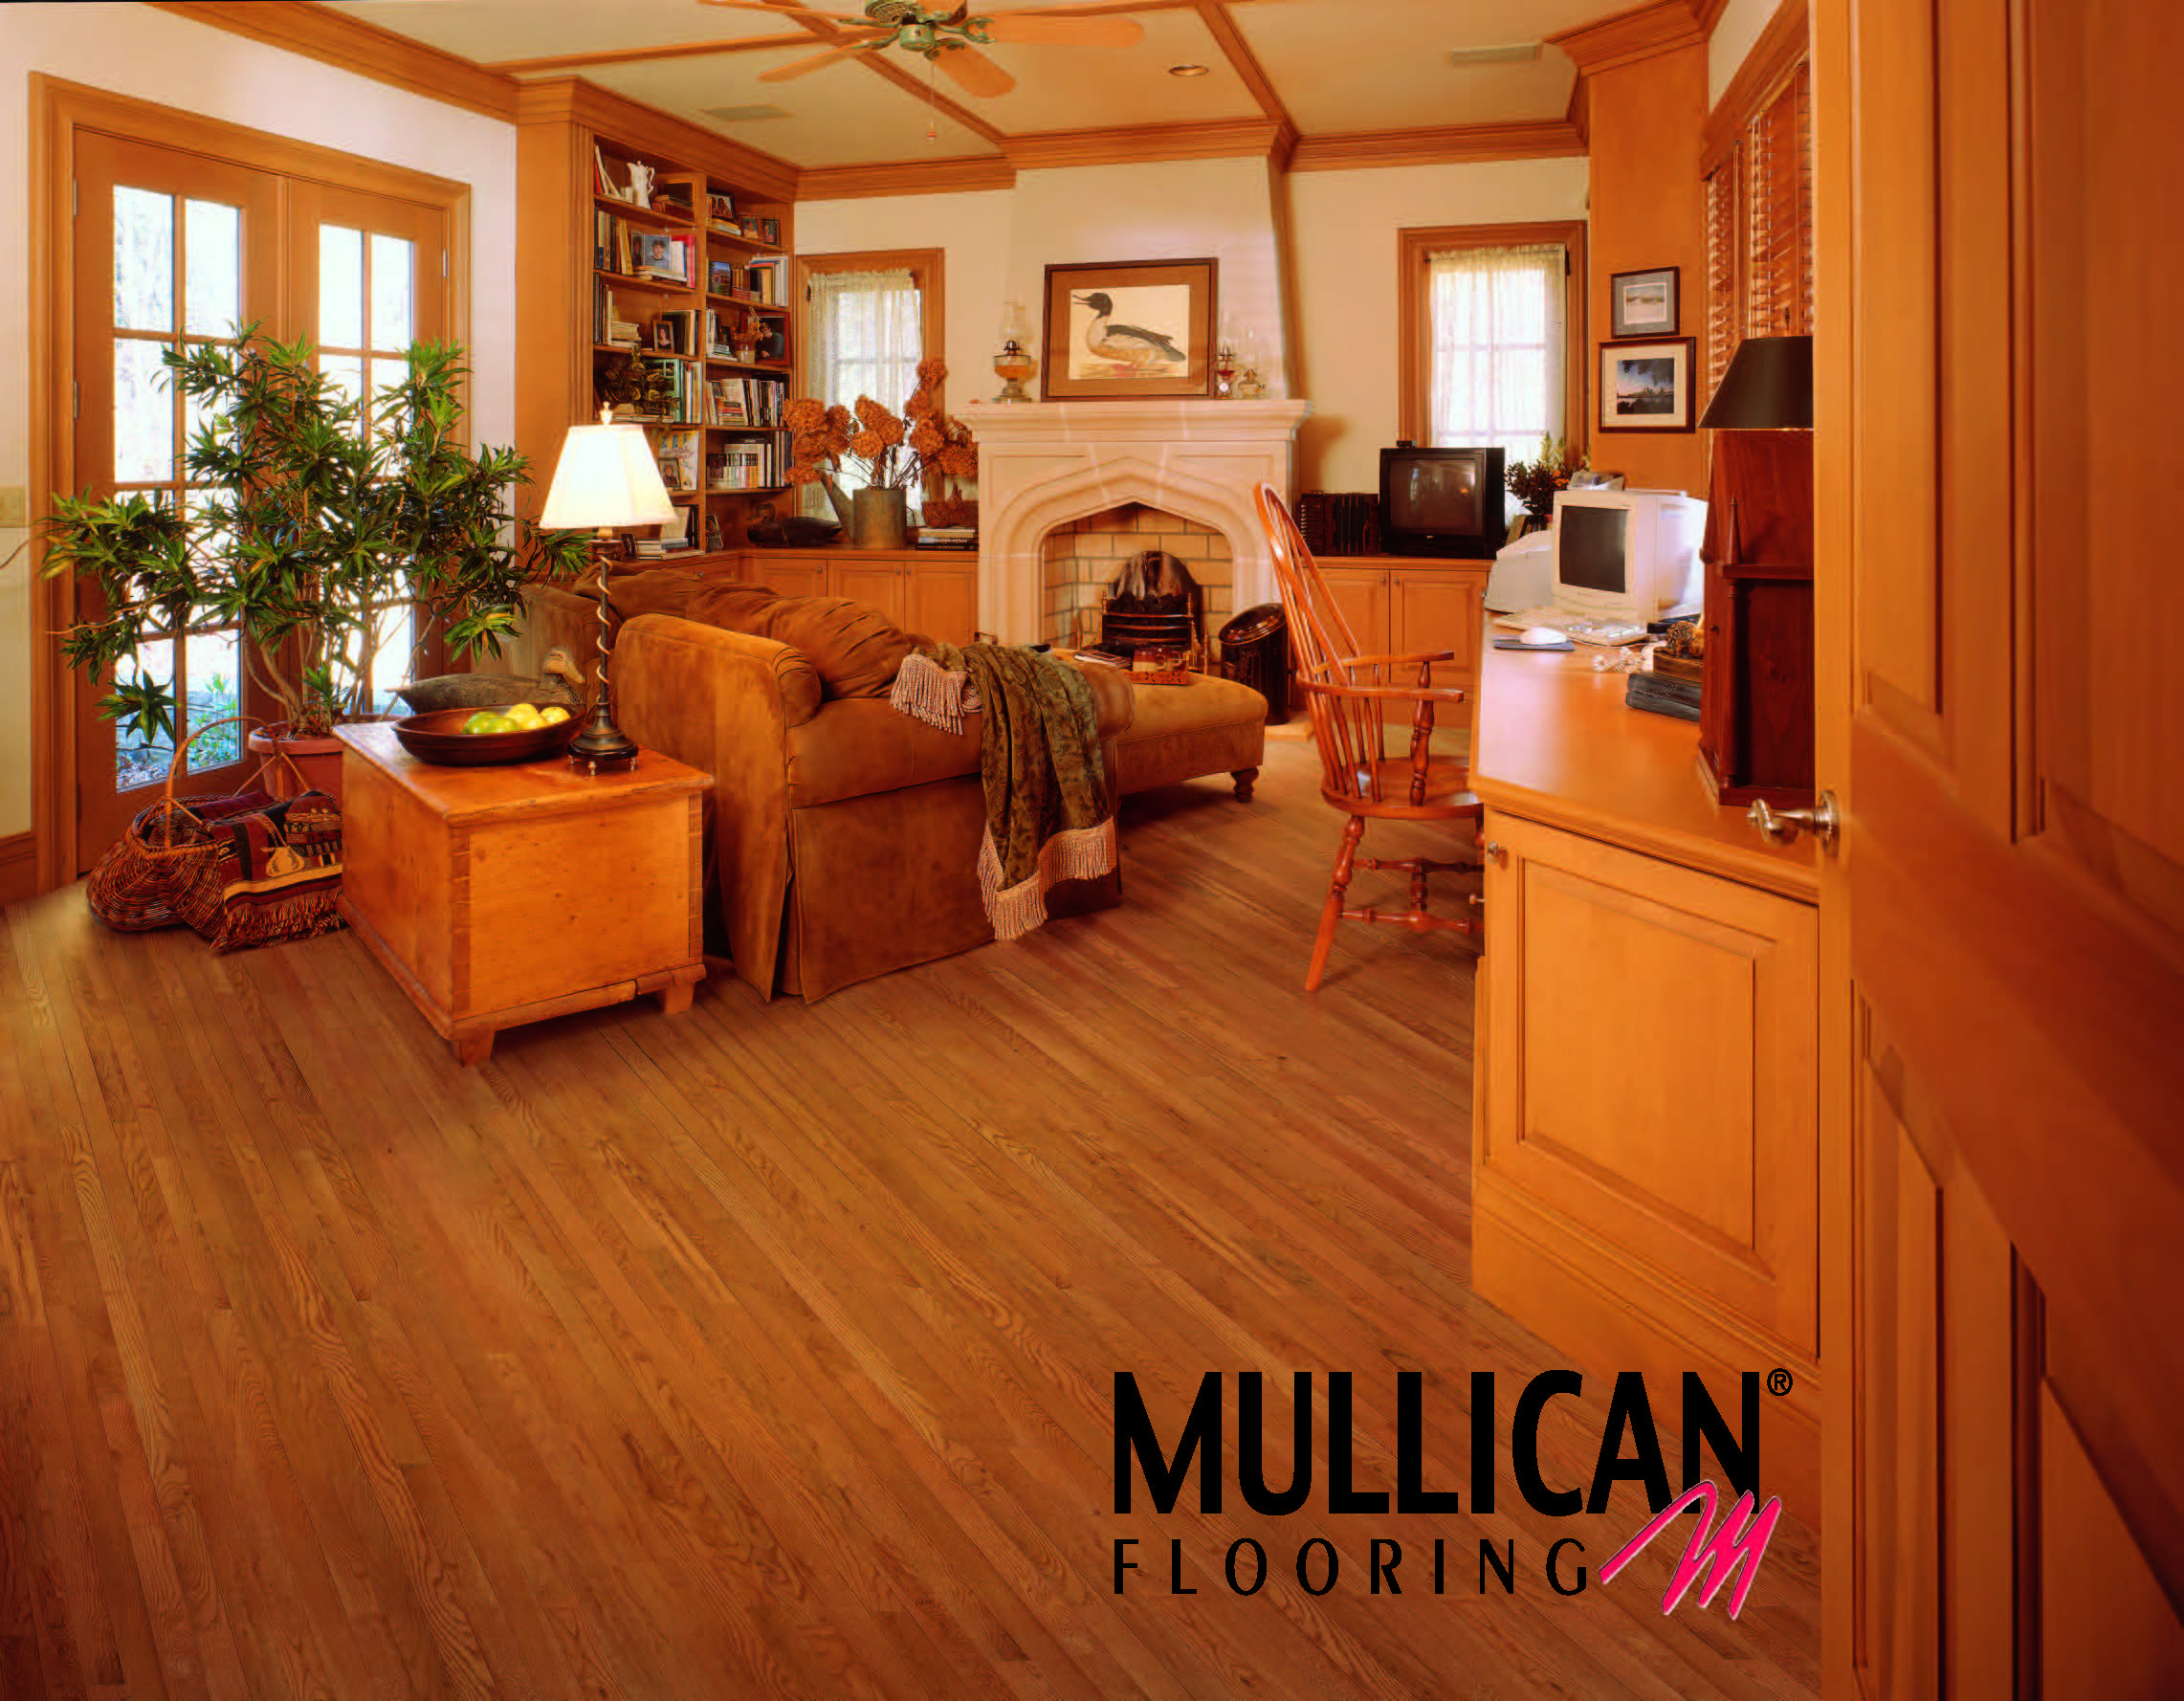 St Andrews Oak Gunstock Is A 3 4 Inch Solid Wood It Comes In 2 1 4 3 Widths And There Are 24 Square Feet In A Carton Mullican Flooring Oak Floors Mullican